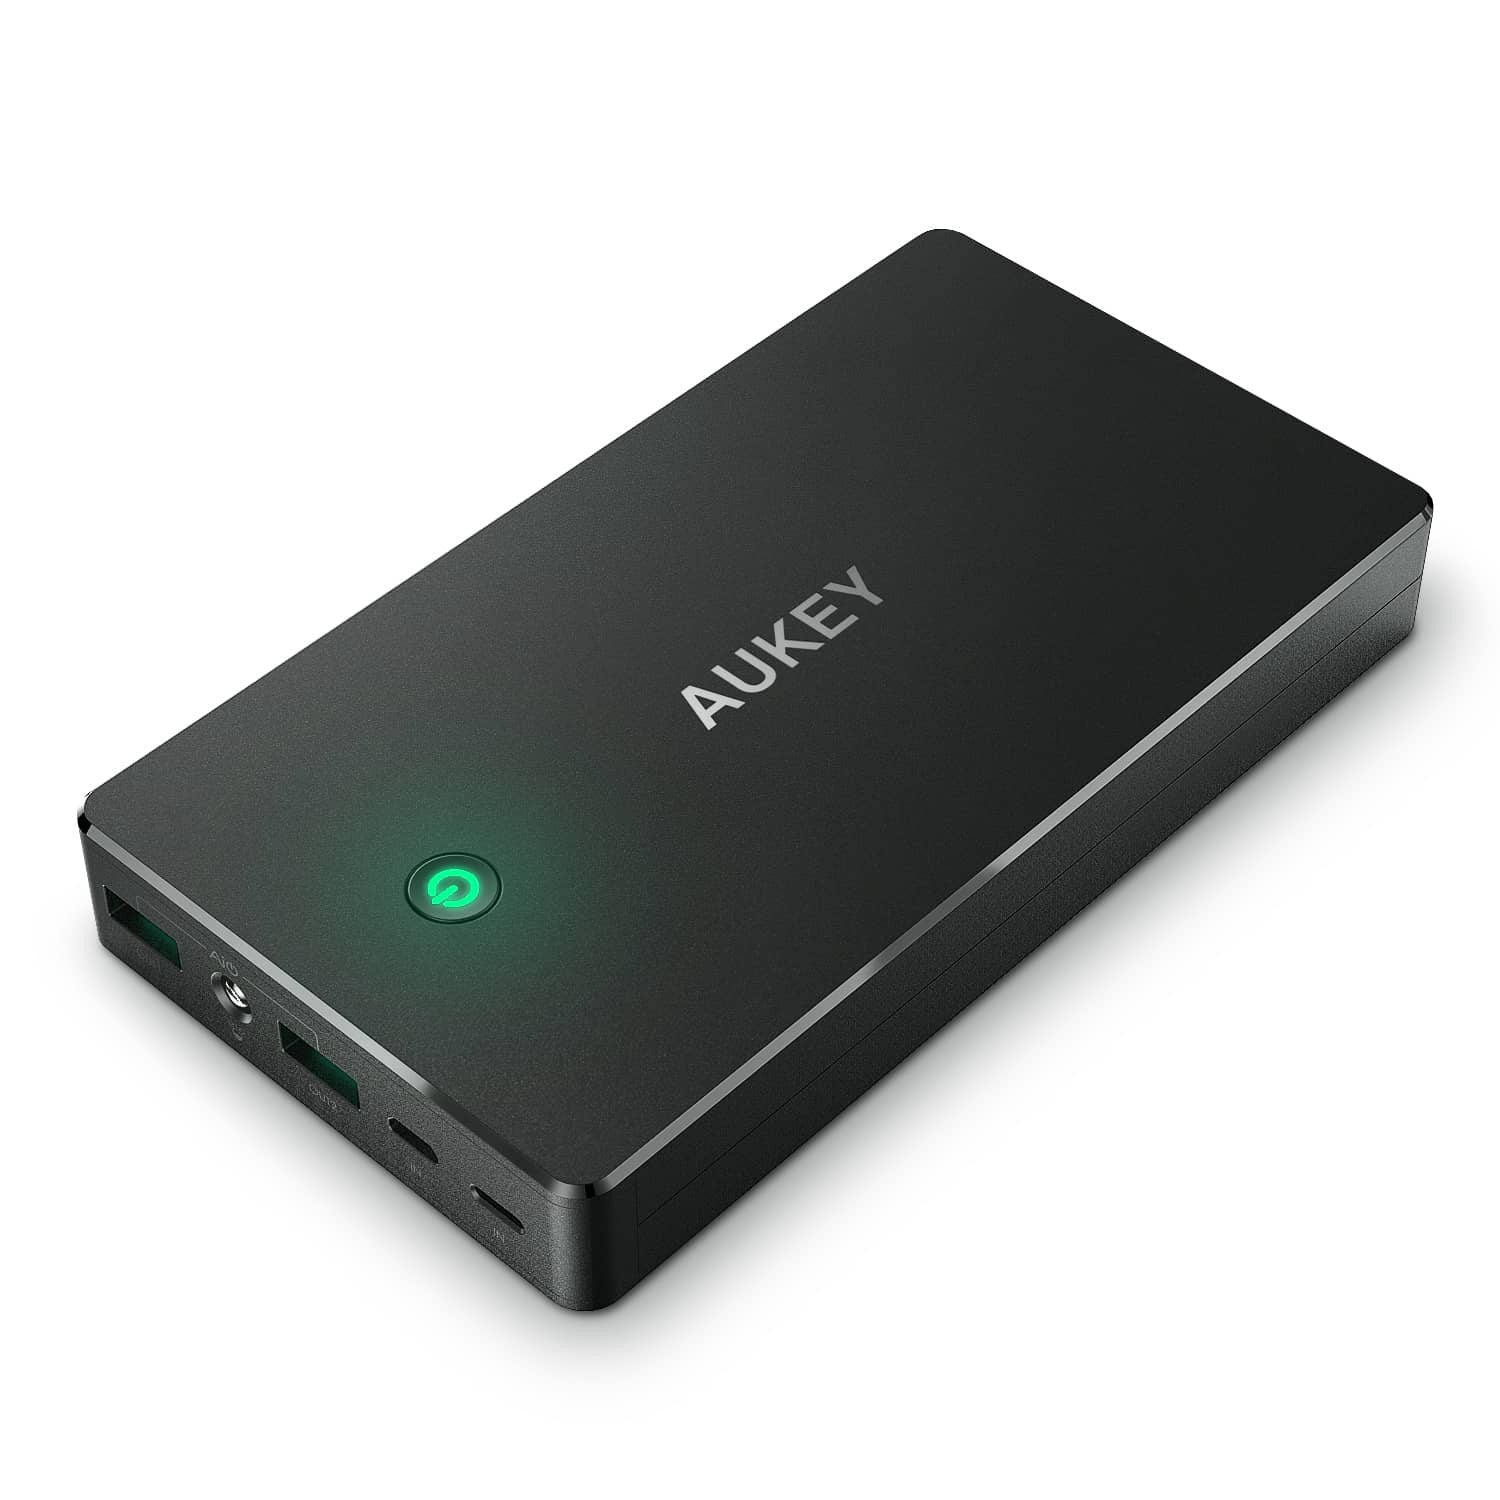 AUKEY PB-N36 3.4A Dual Turbo Recharge AiPower 20000mAh Power Bank - Aukey Malaysia Official Store